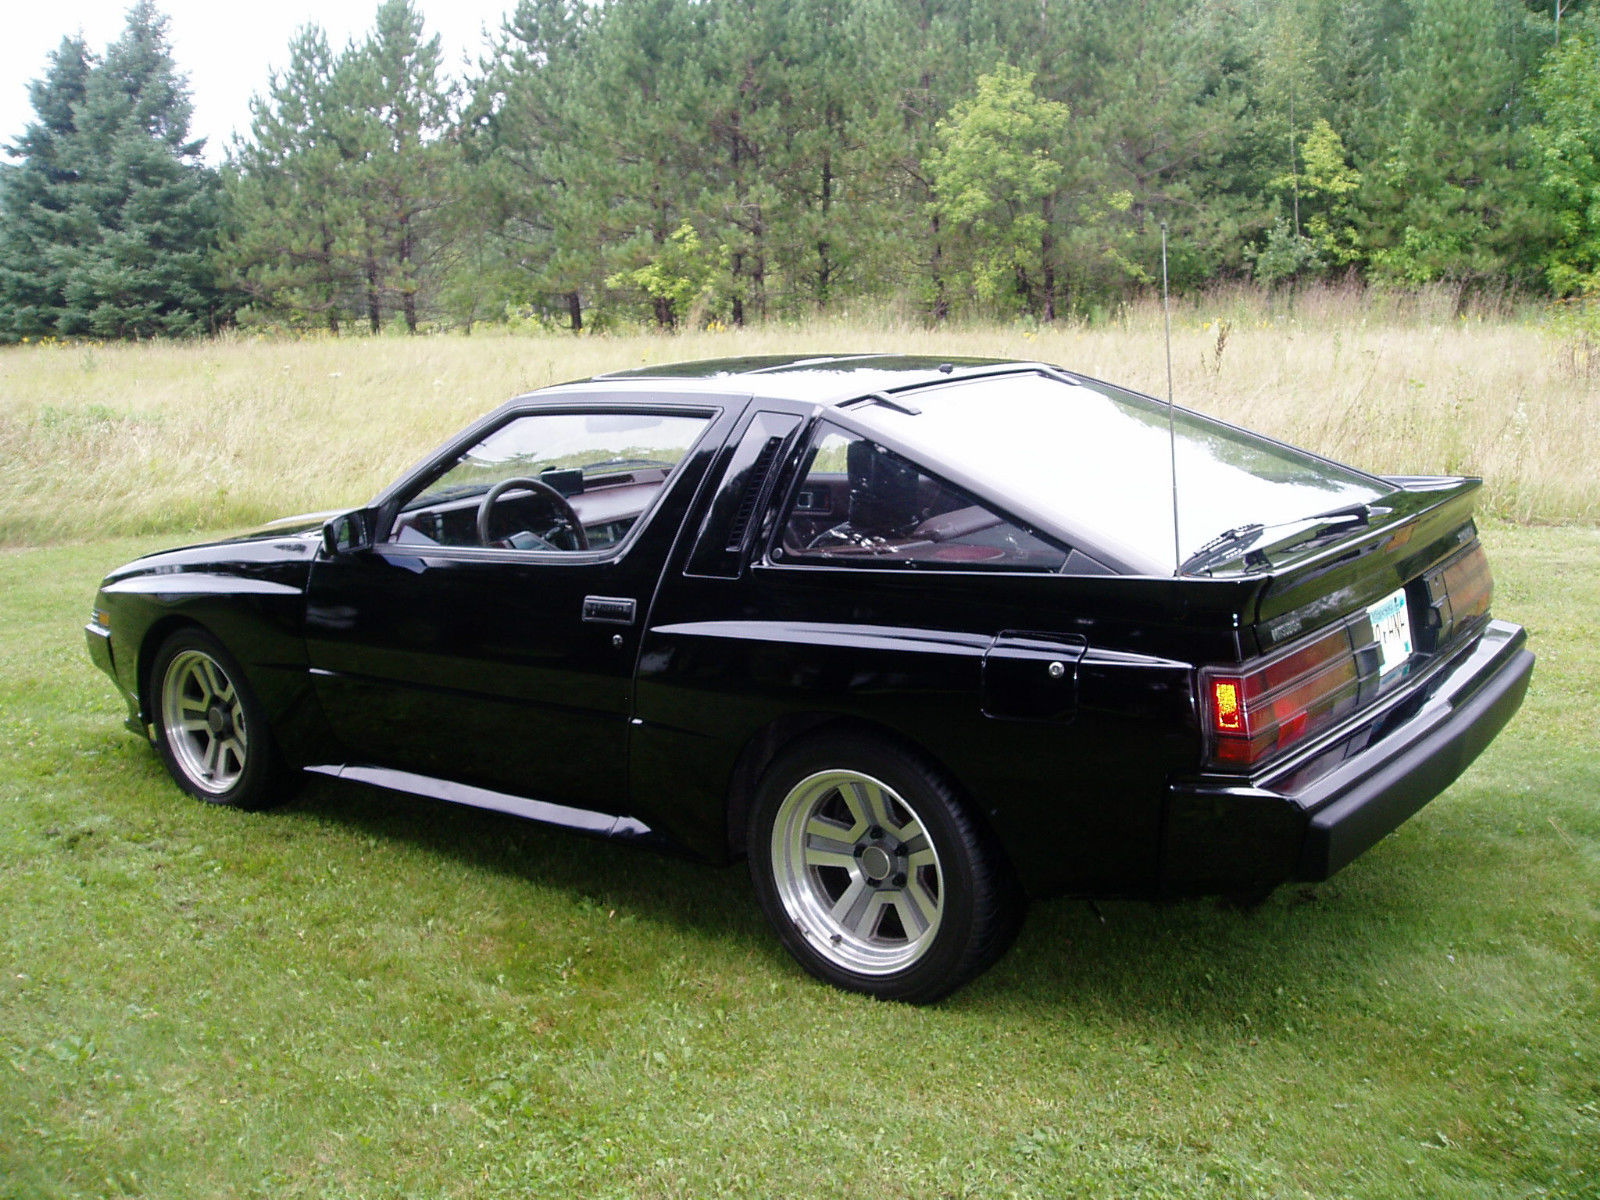 Impound Cars For Sale >> 1986 Mitsubishi Starion /Conquest Coupe 2-Door 2.6L ...